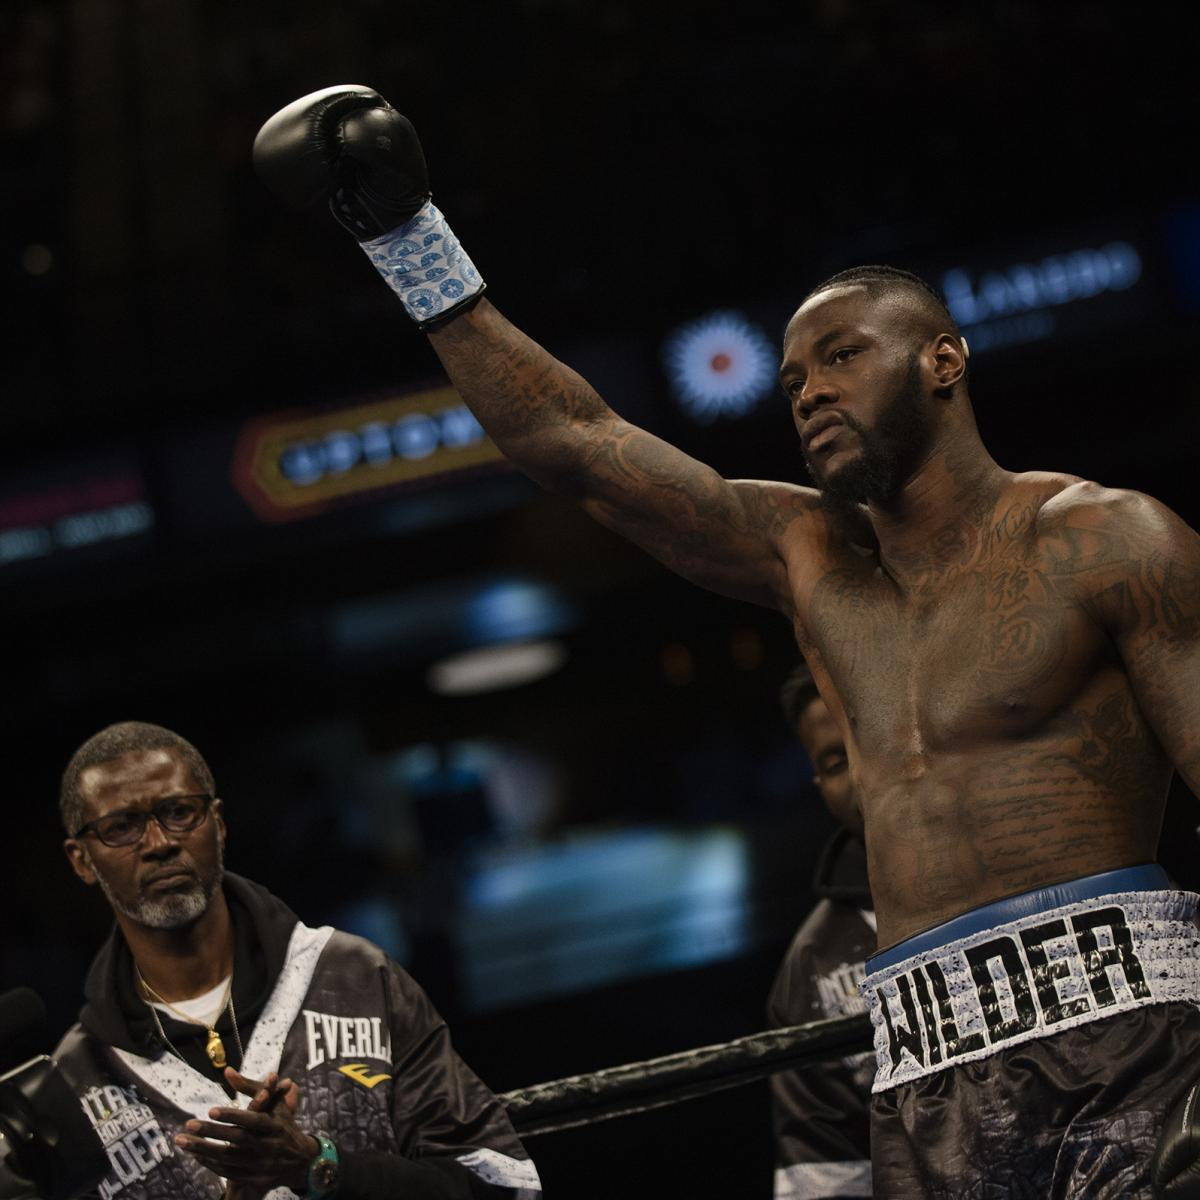 Deontay Wilder Vs. Bermane Stiverne: Fight Time, Date